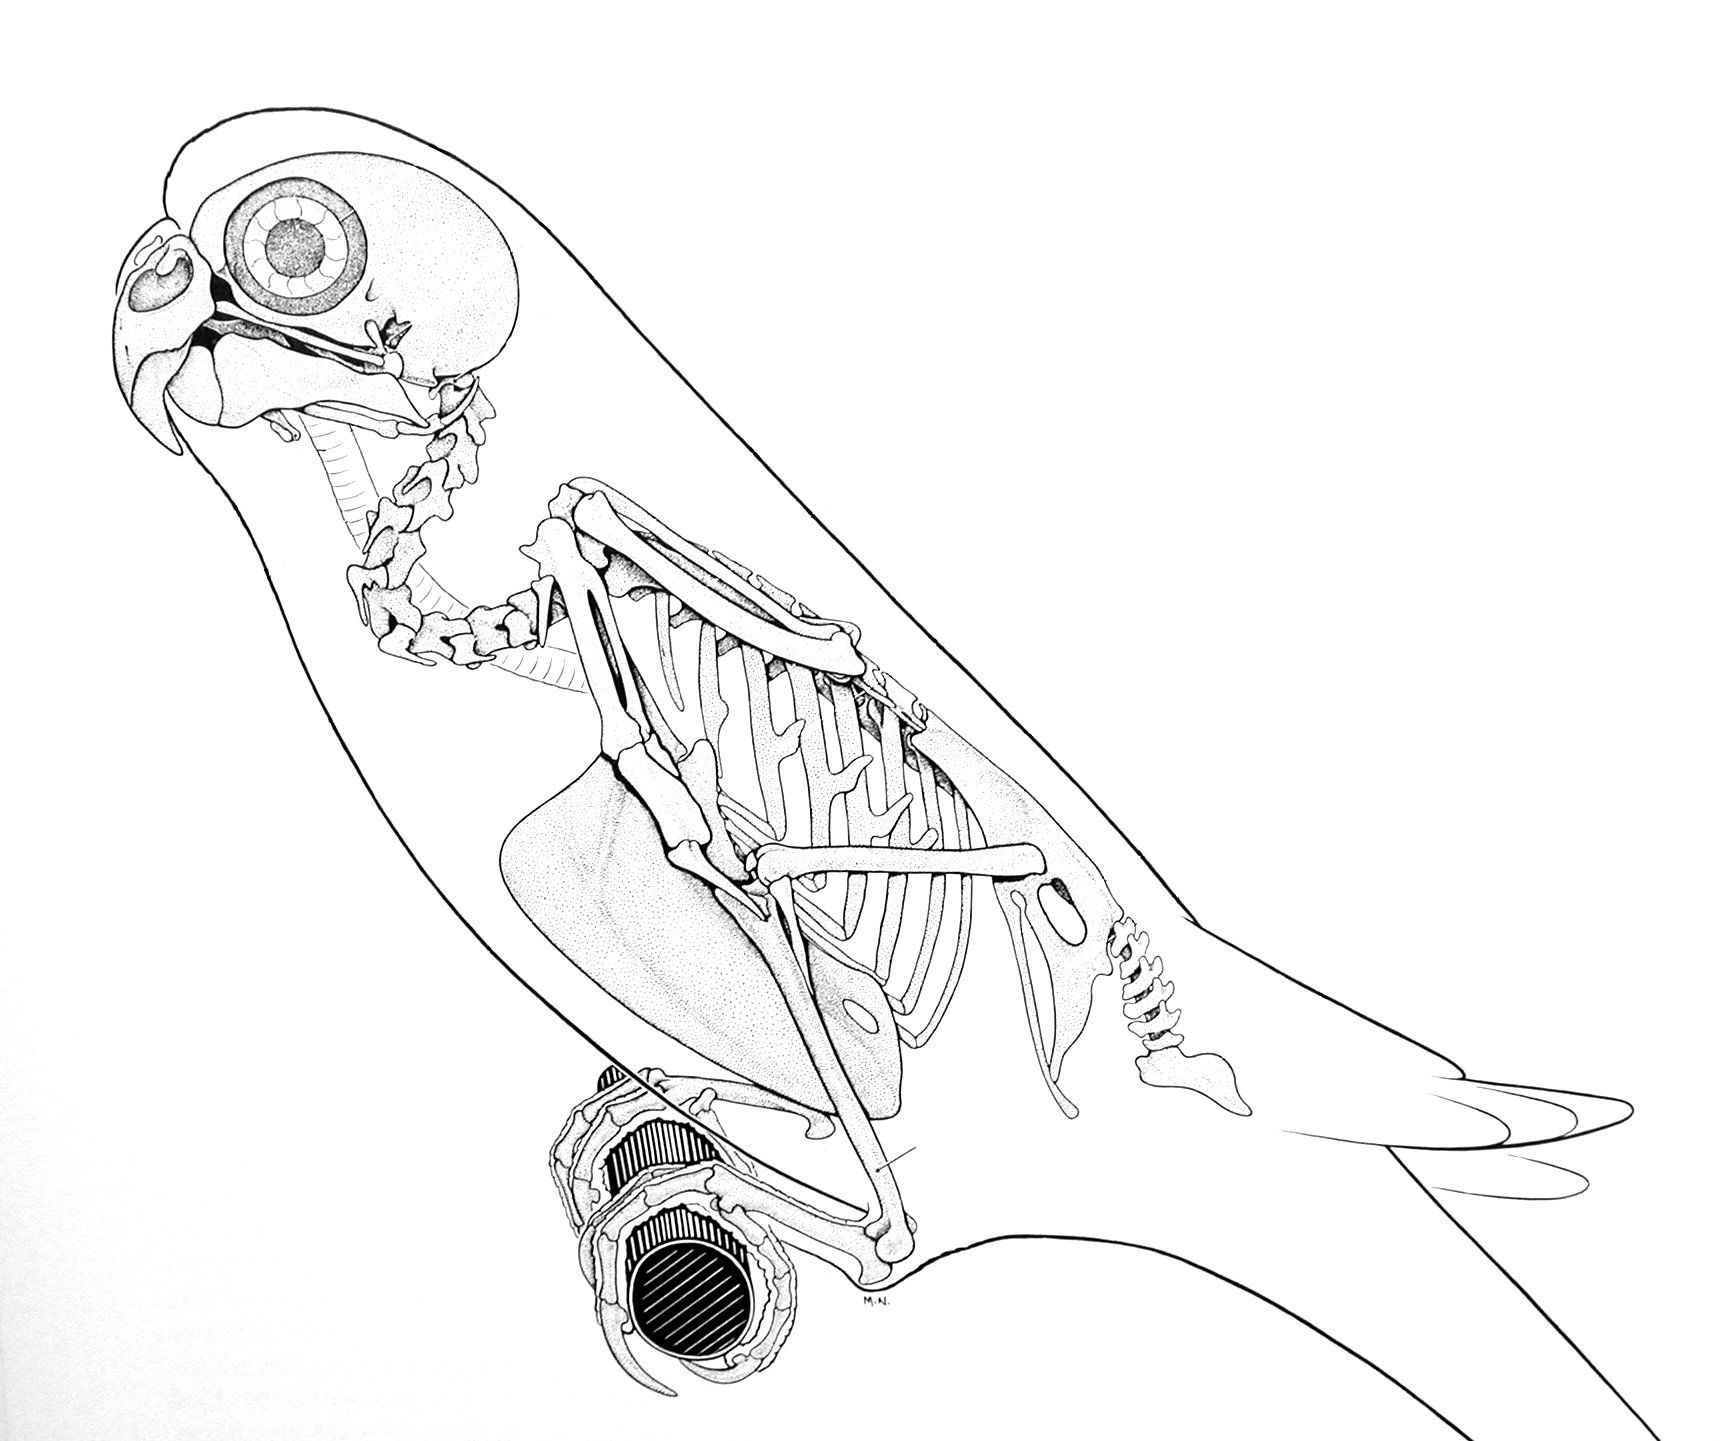 animal skeleton images | in most of the smaller birds like this ...